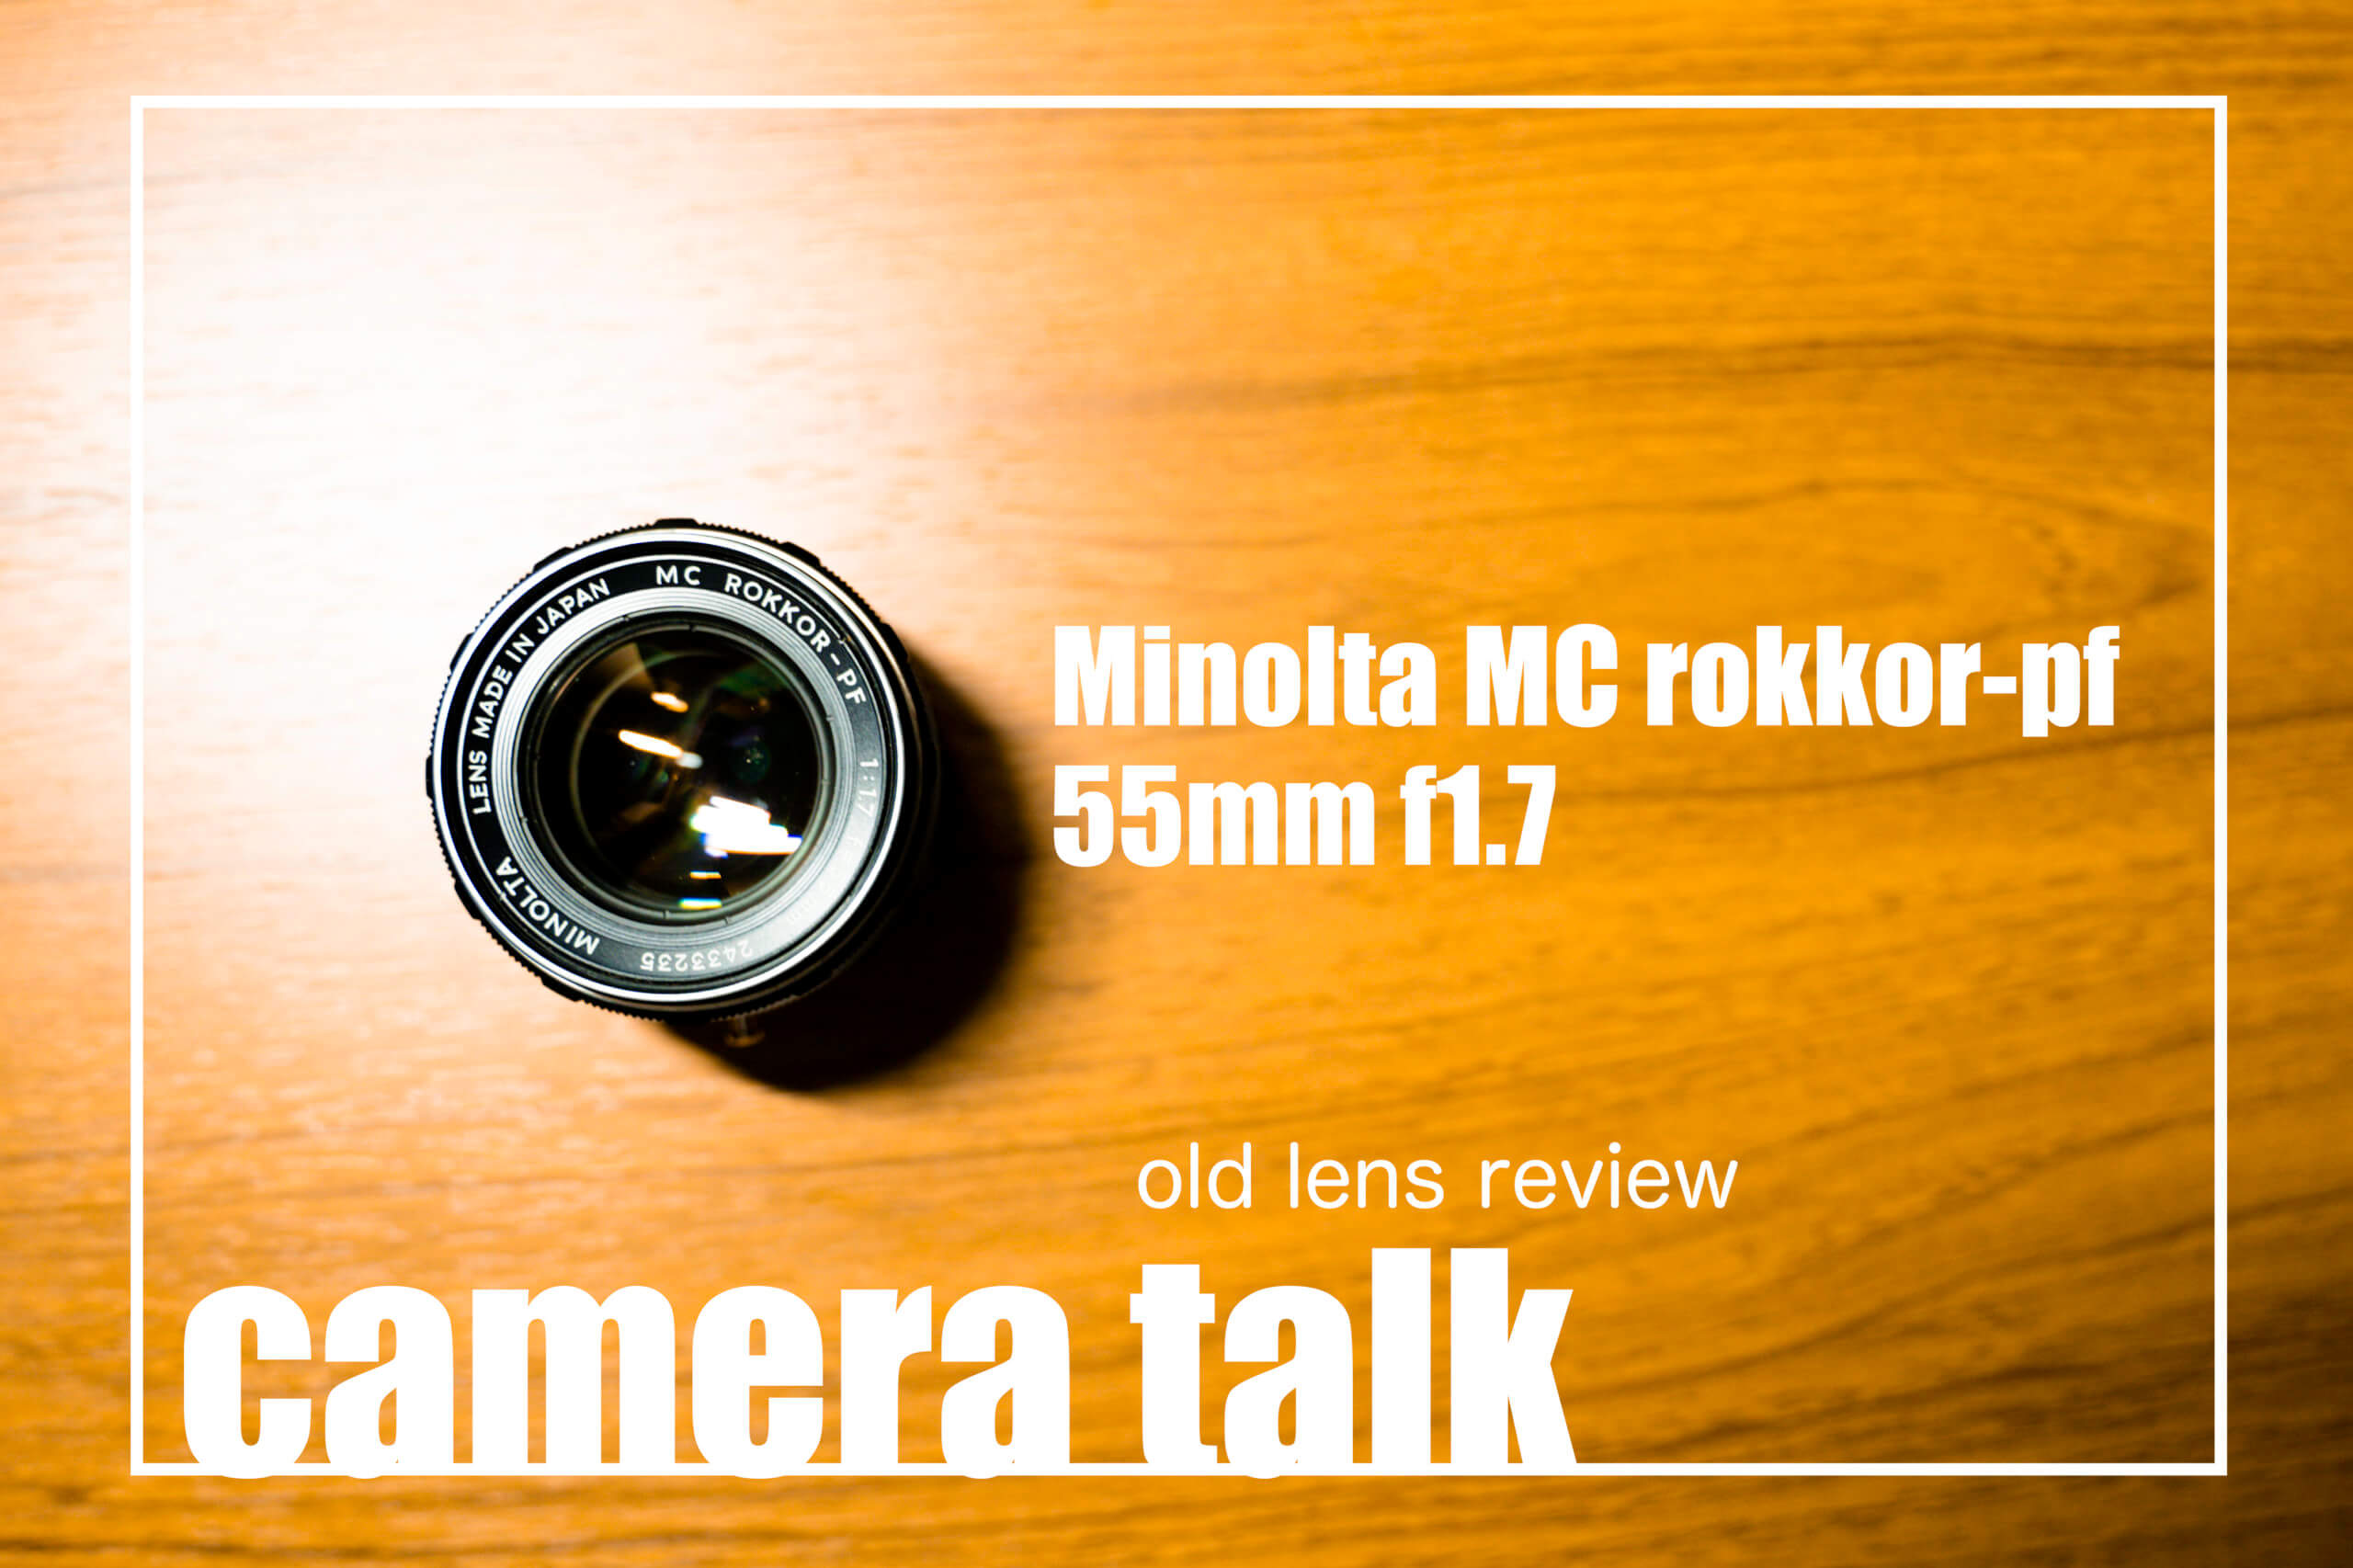 camera talk 《オールドレンズ「Minolta MC rokkor-pf 55mm f1.7」 プレレビュー》